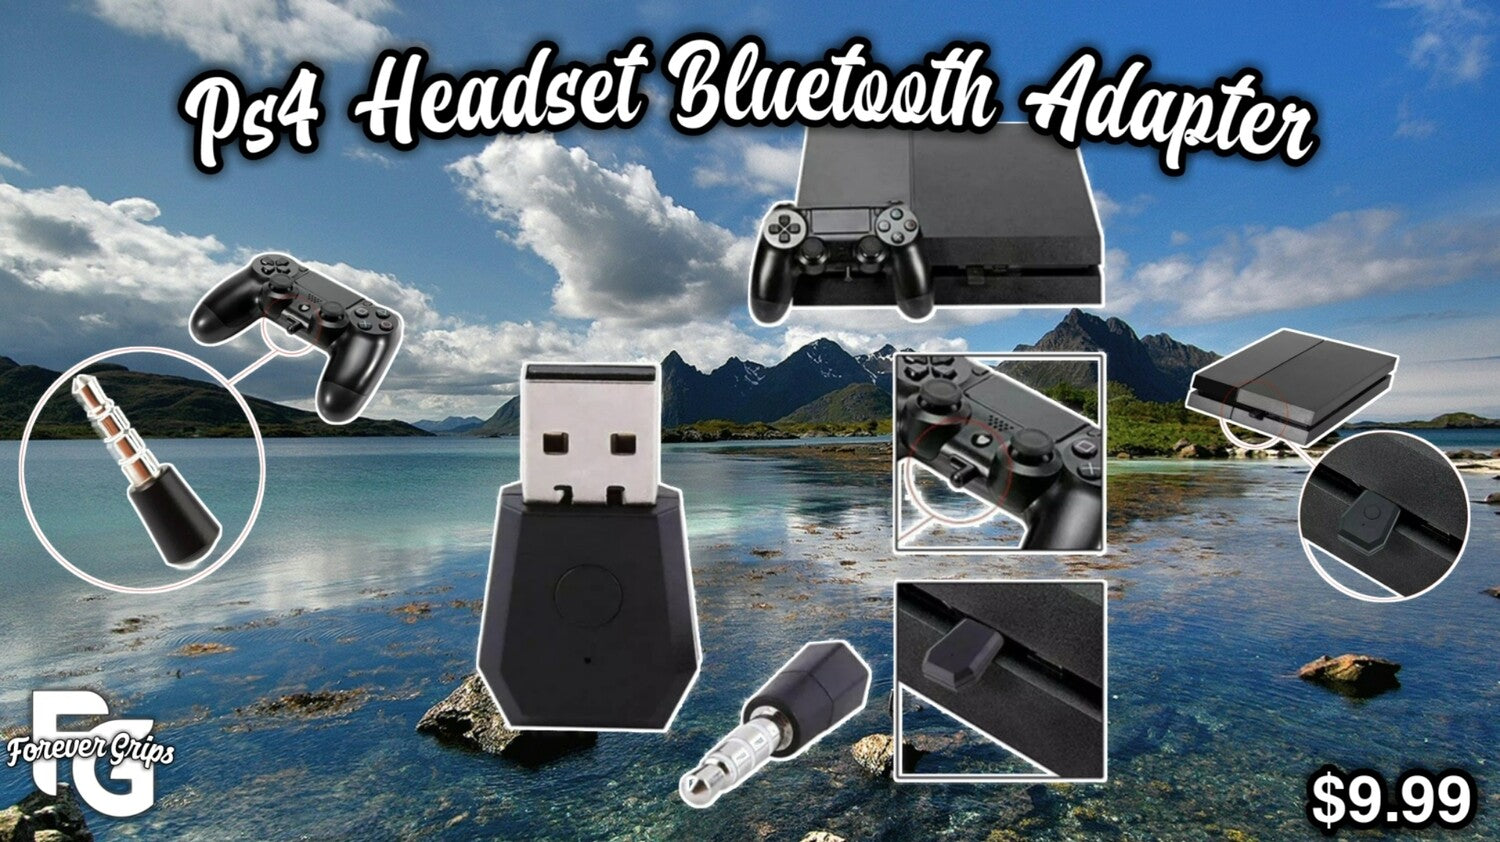 Ps4 Headset Bluetooth Adapter